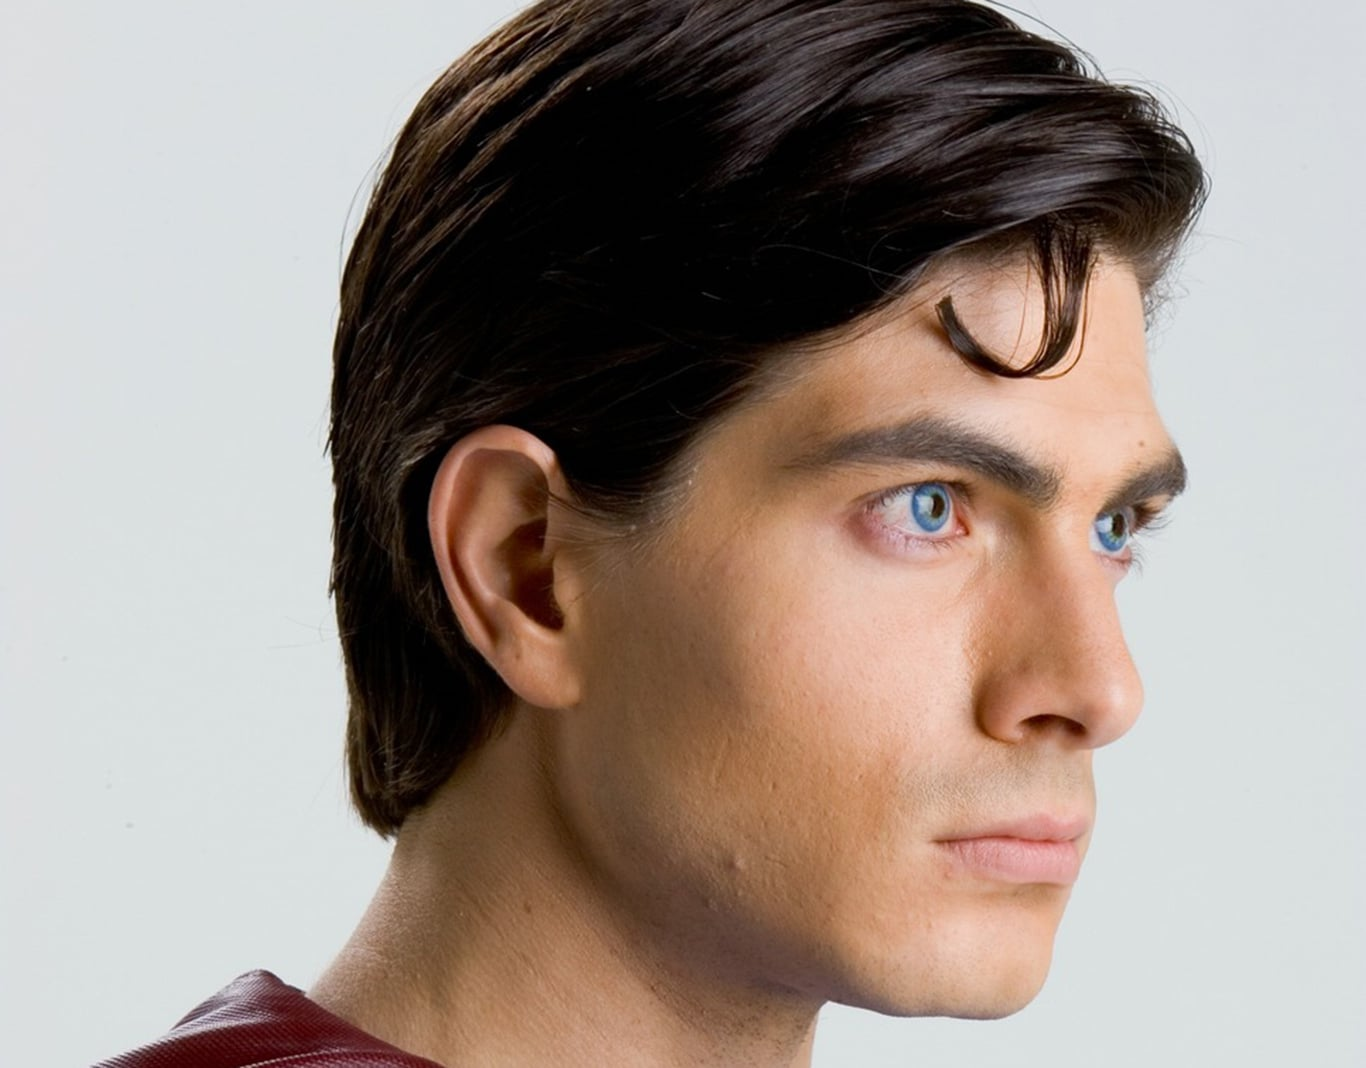 Wallpapers Hd Technology Brandon Routh Hd Wallpapers Free Donwload